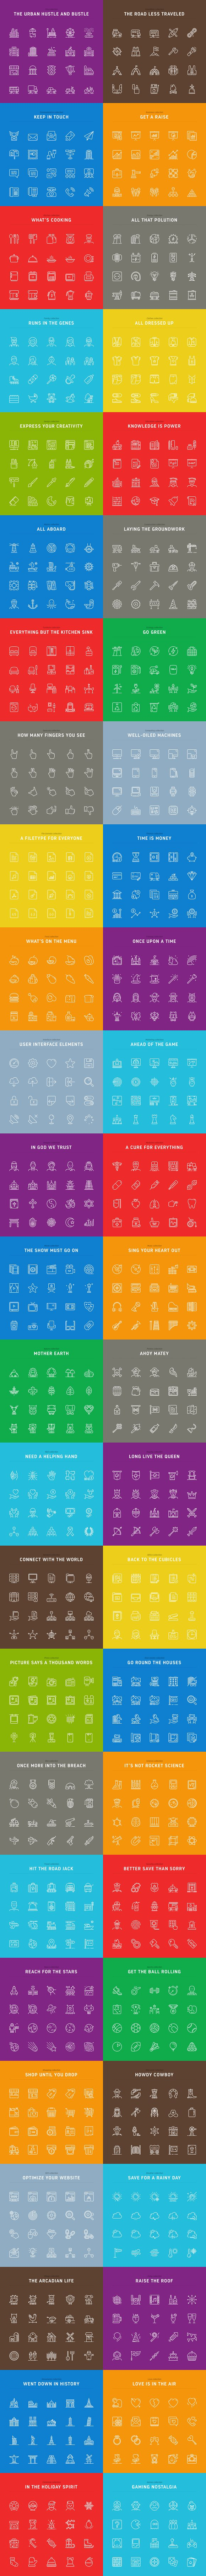 lineking ios icons icons creative market